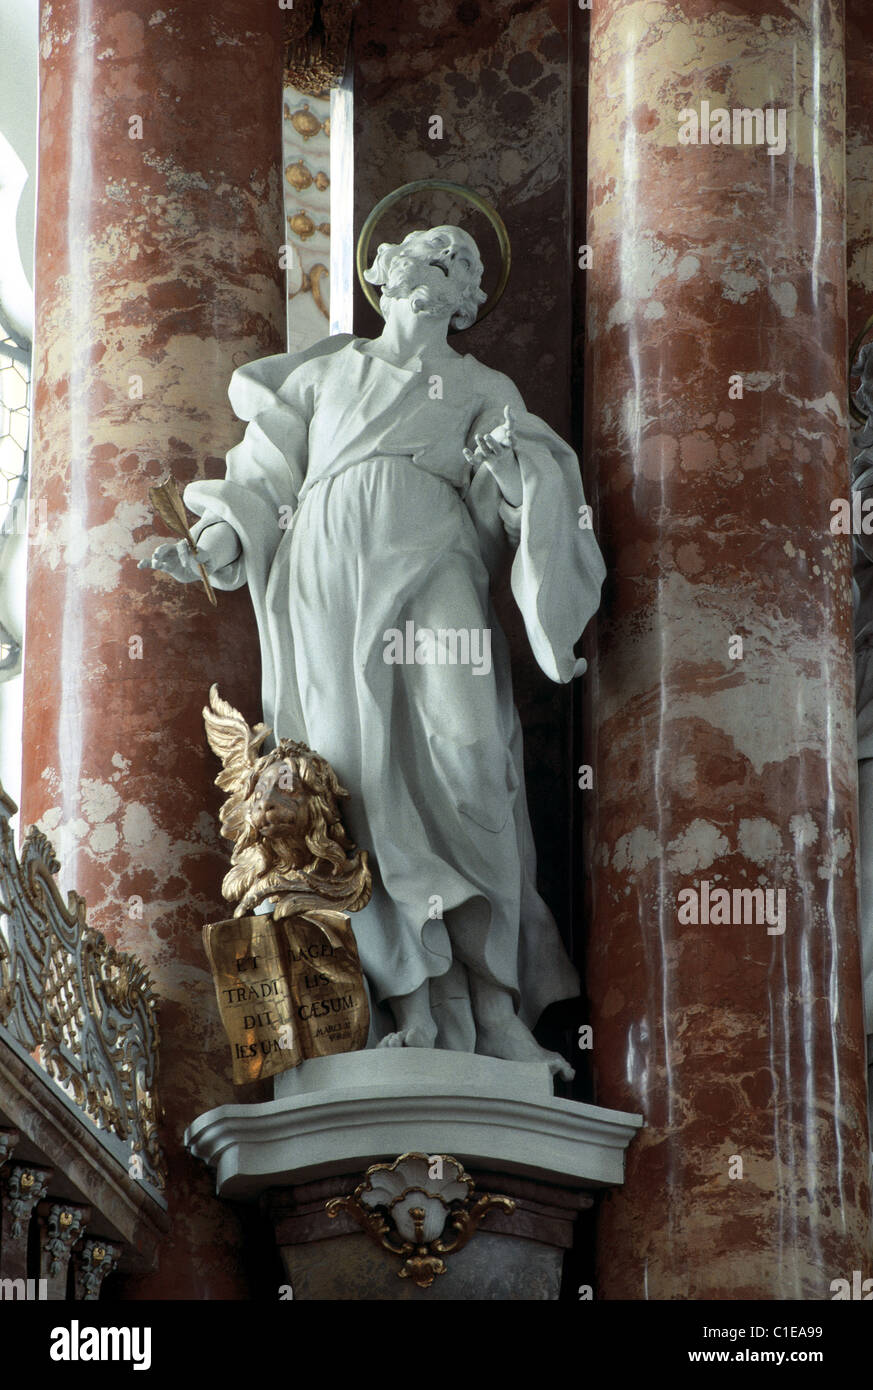 Germany, region of Bavaria, Wiese baroque church, statue of a saint in the nave - Stock Image